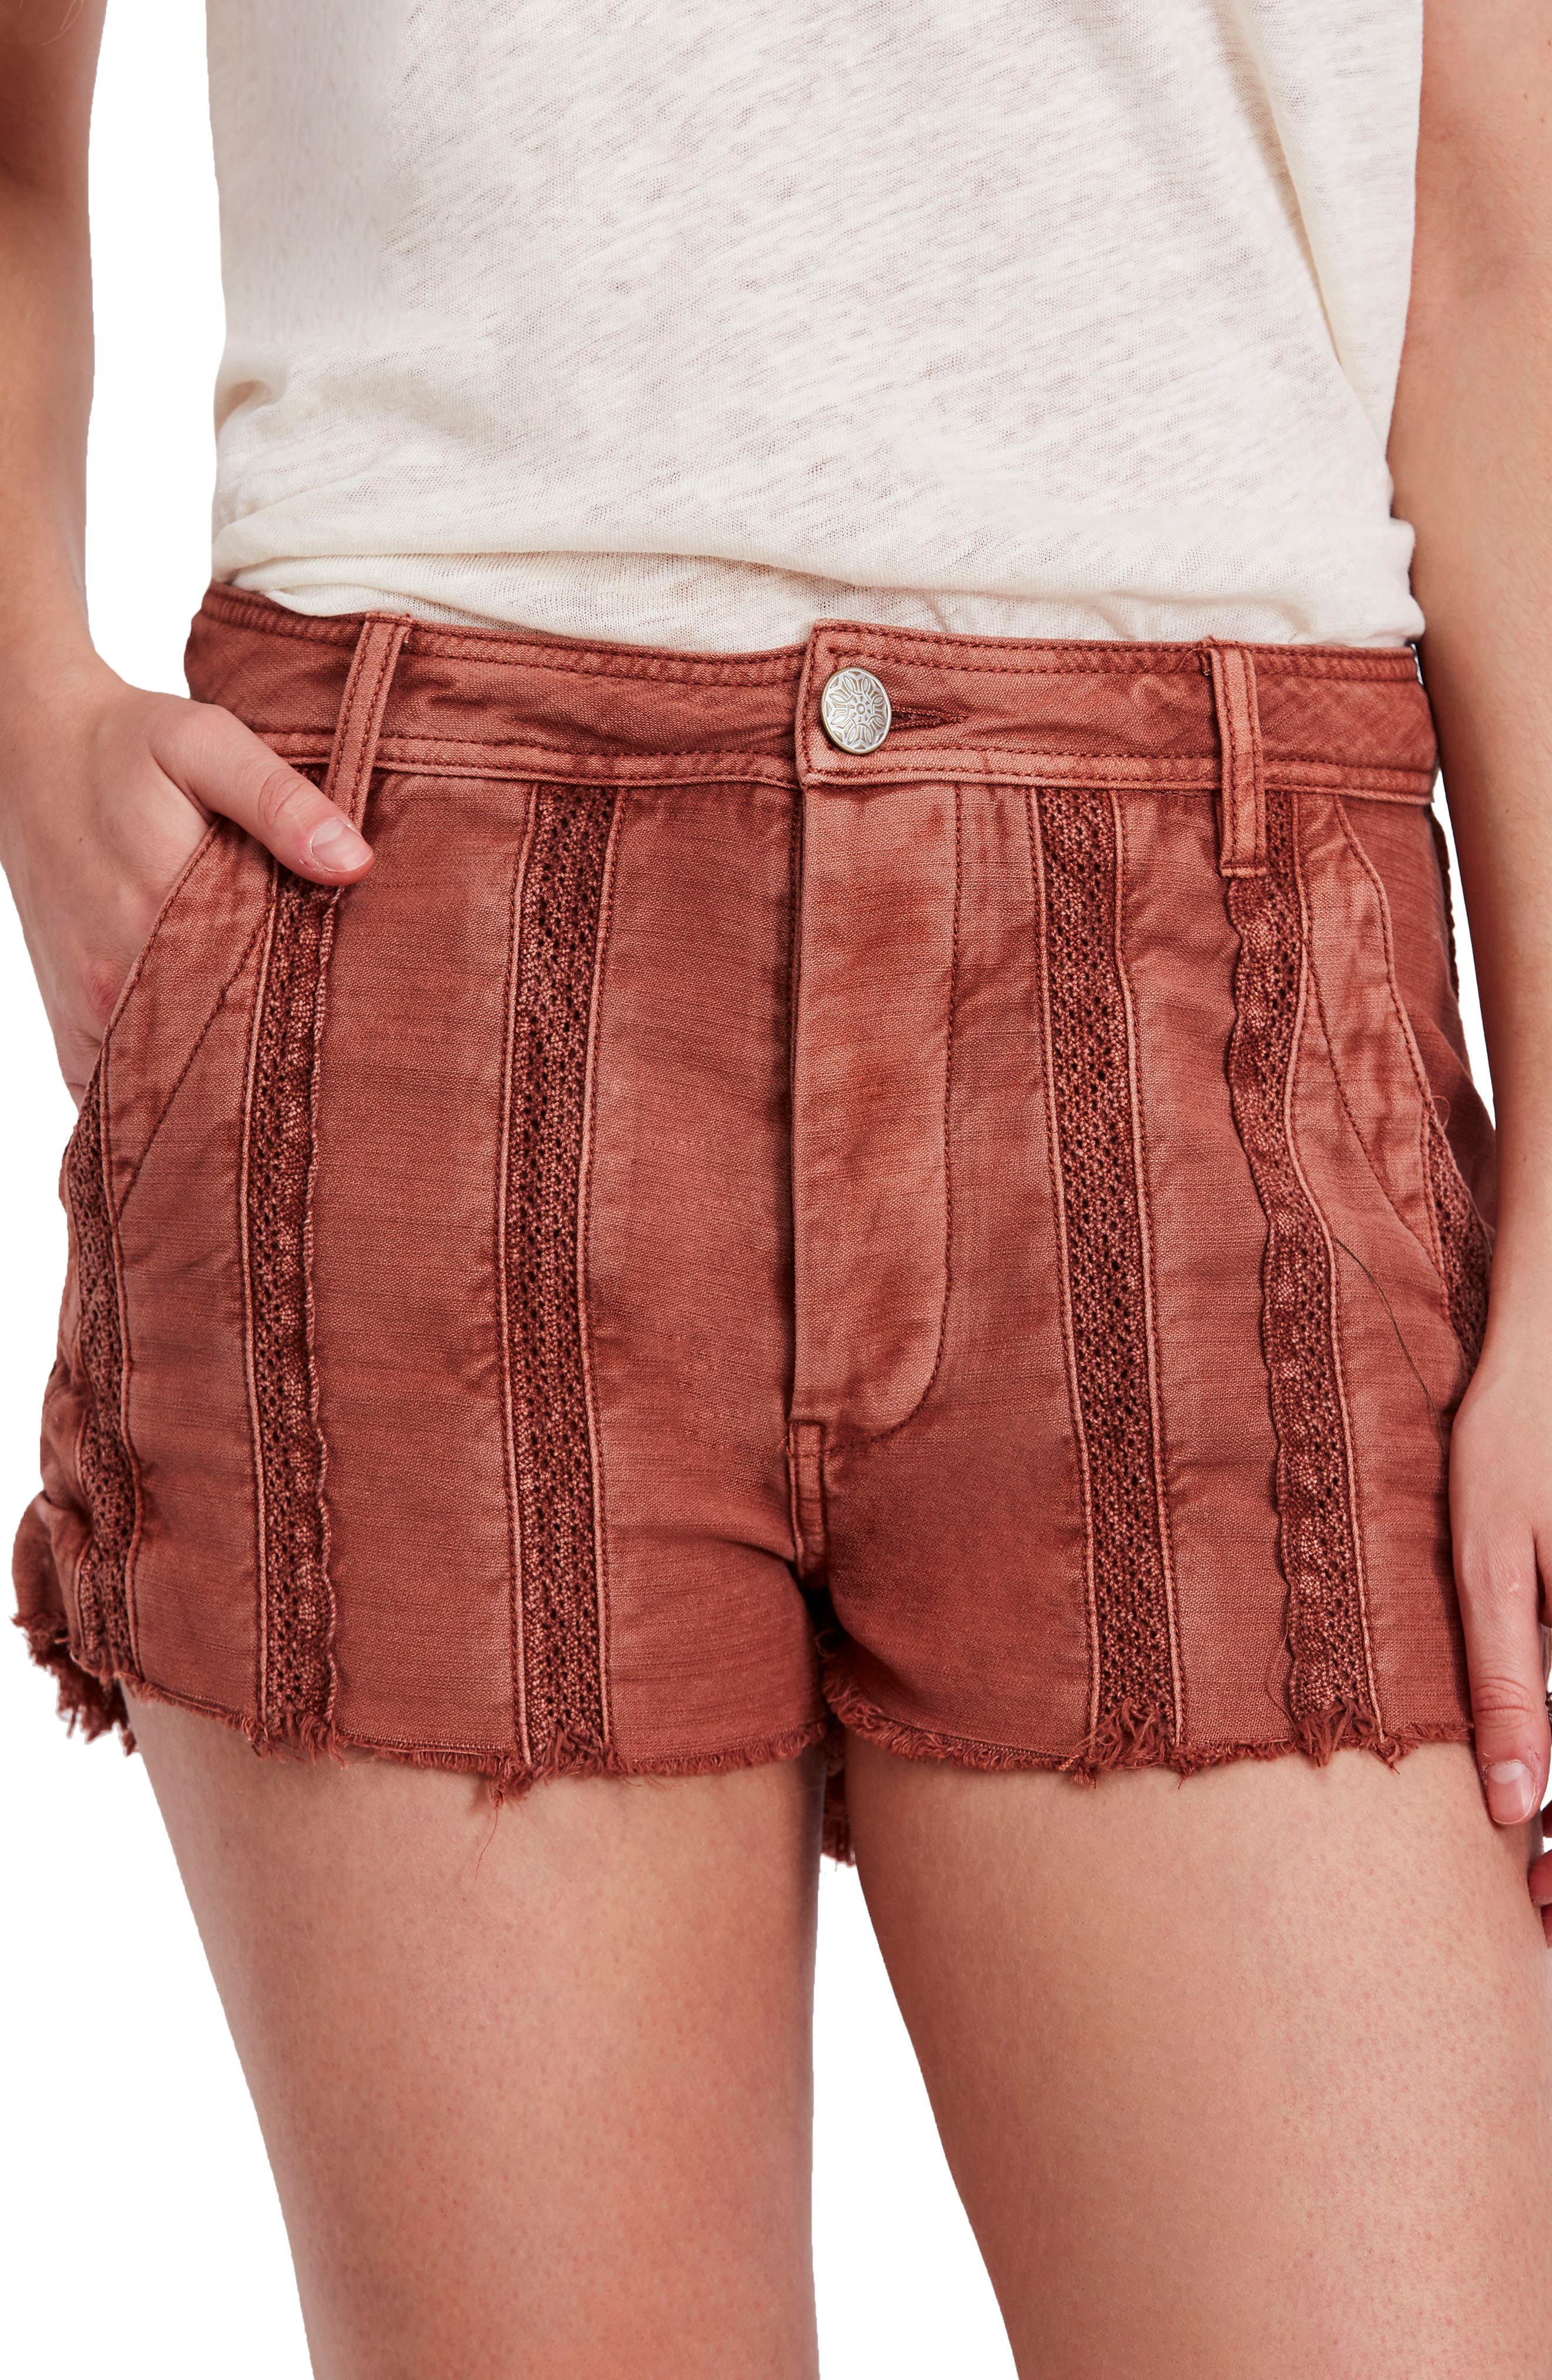 Great Expectations Lace Cutout Shorts,                         Main,                         color, Peach